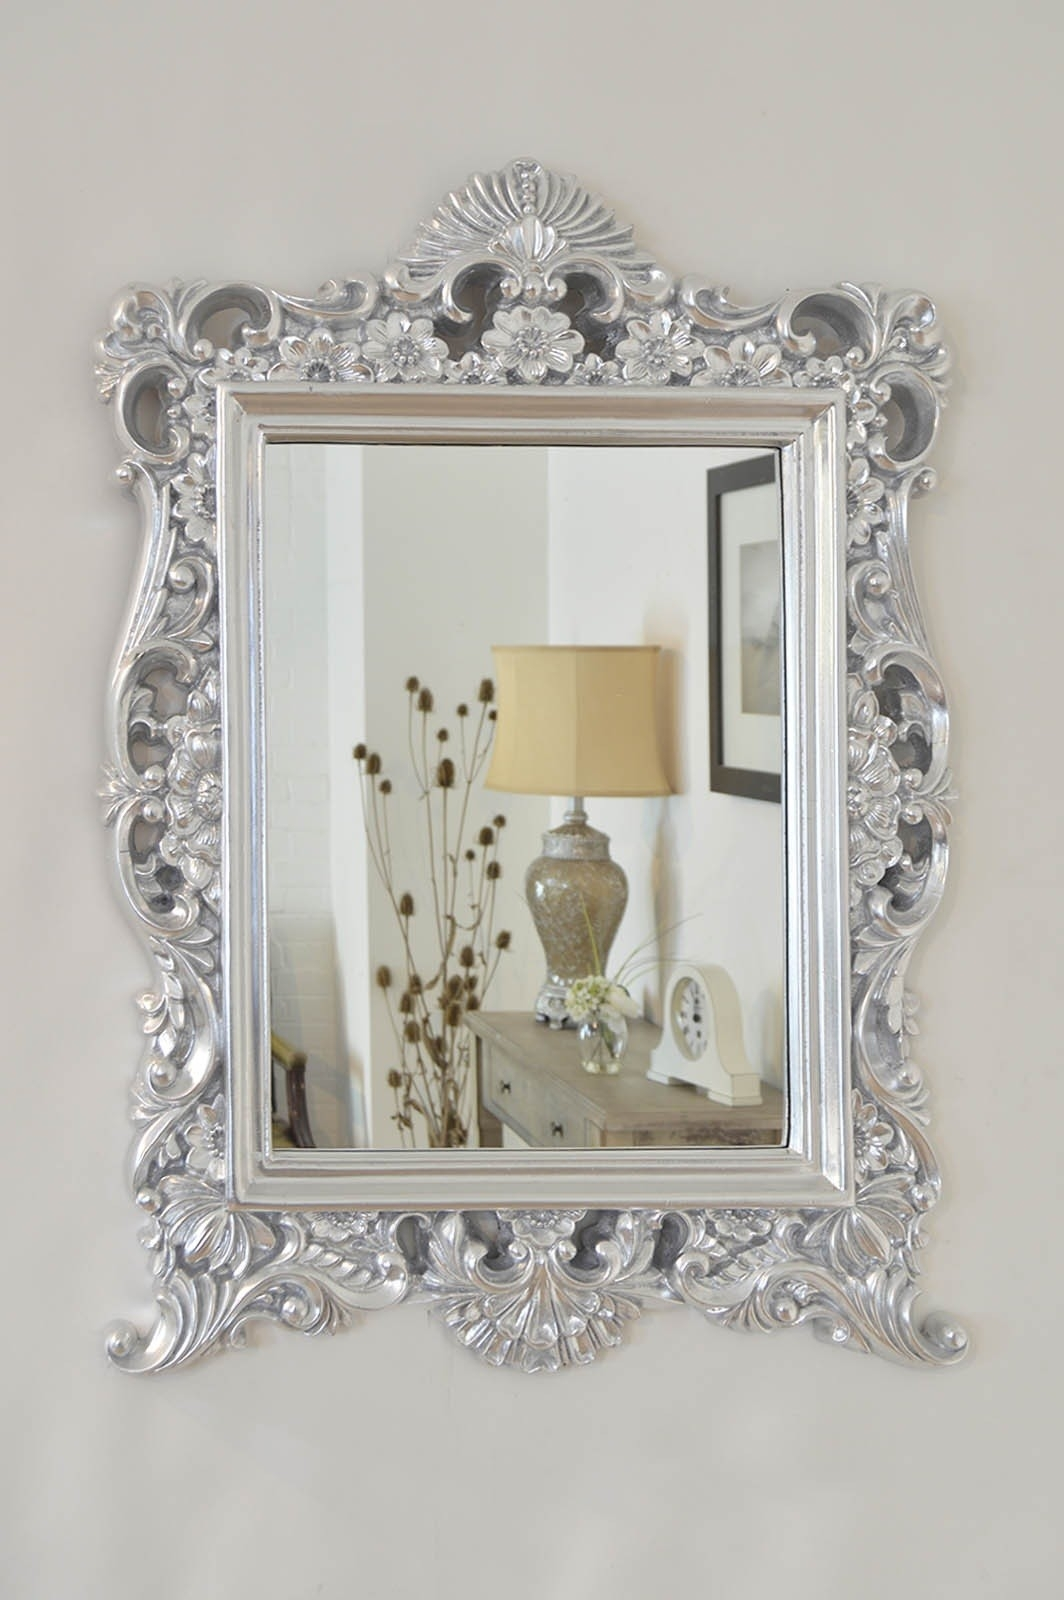 Ornate silver mirror mirror ideas large silver baroque style portrait ornate wall mirror 2ft9 x 2ft1 pertaining to ornate silver mirror amipublicfo Choice Image